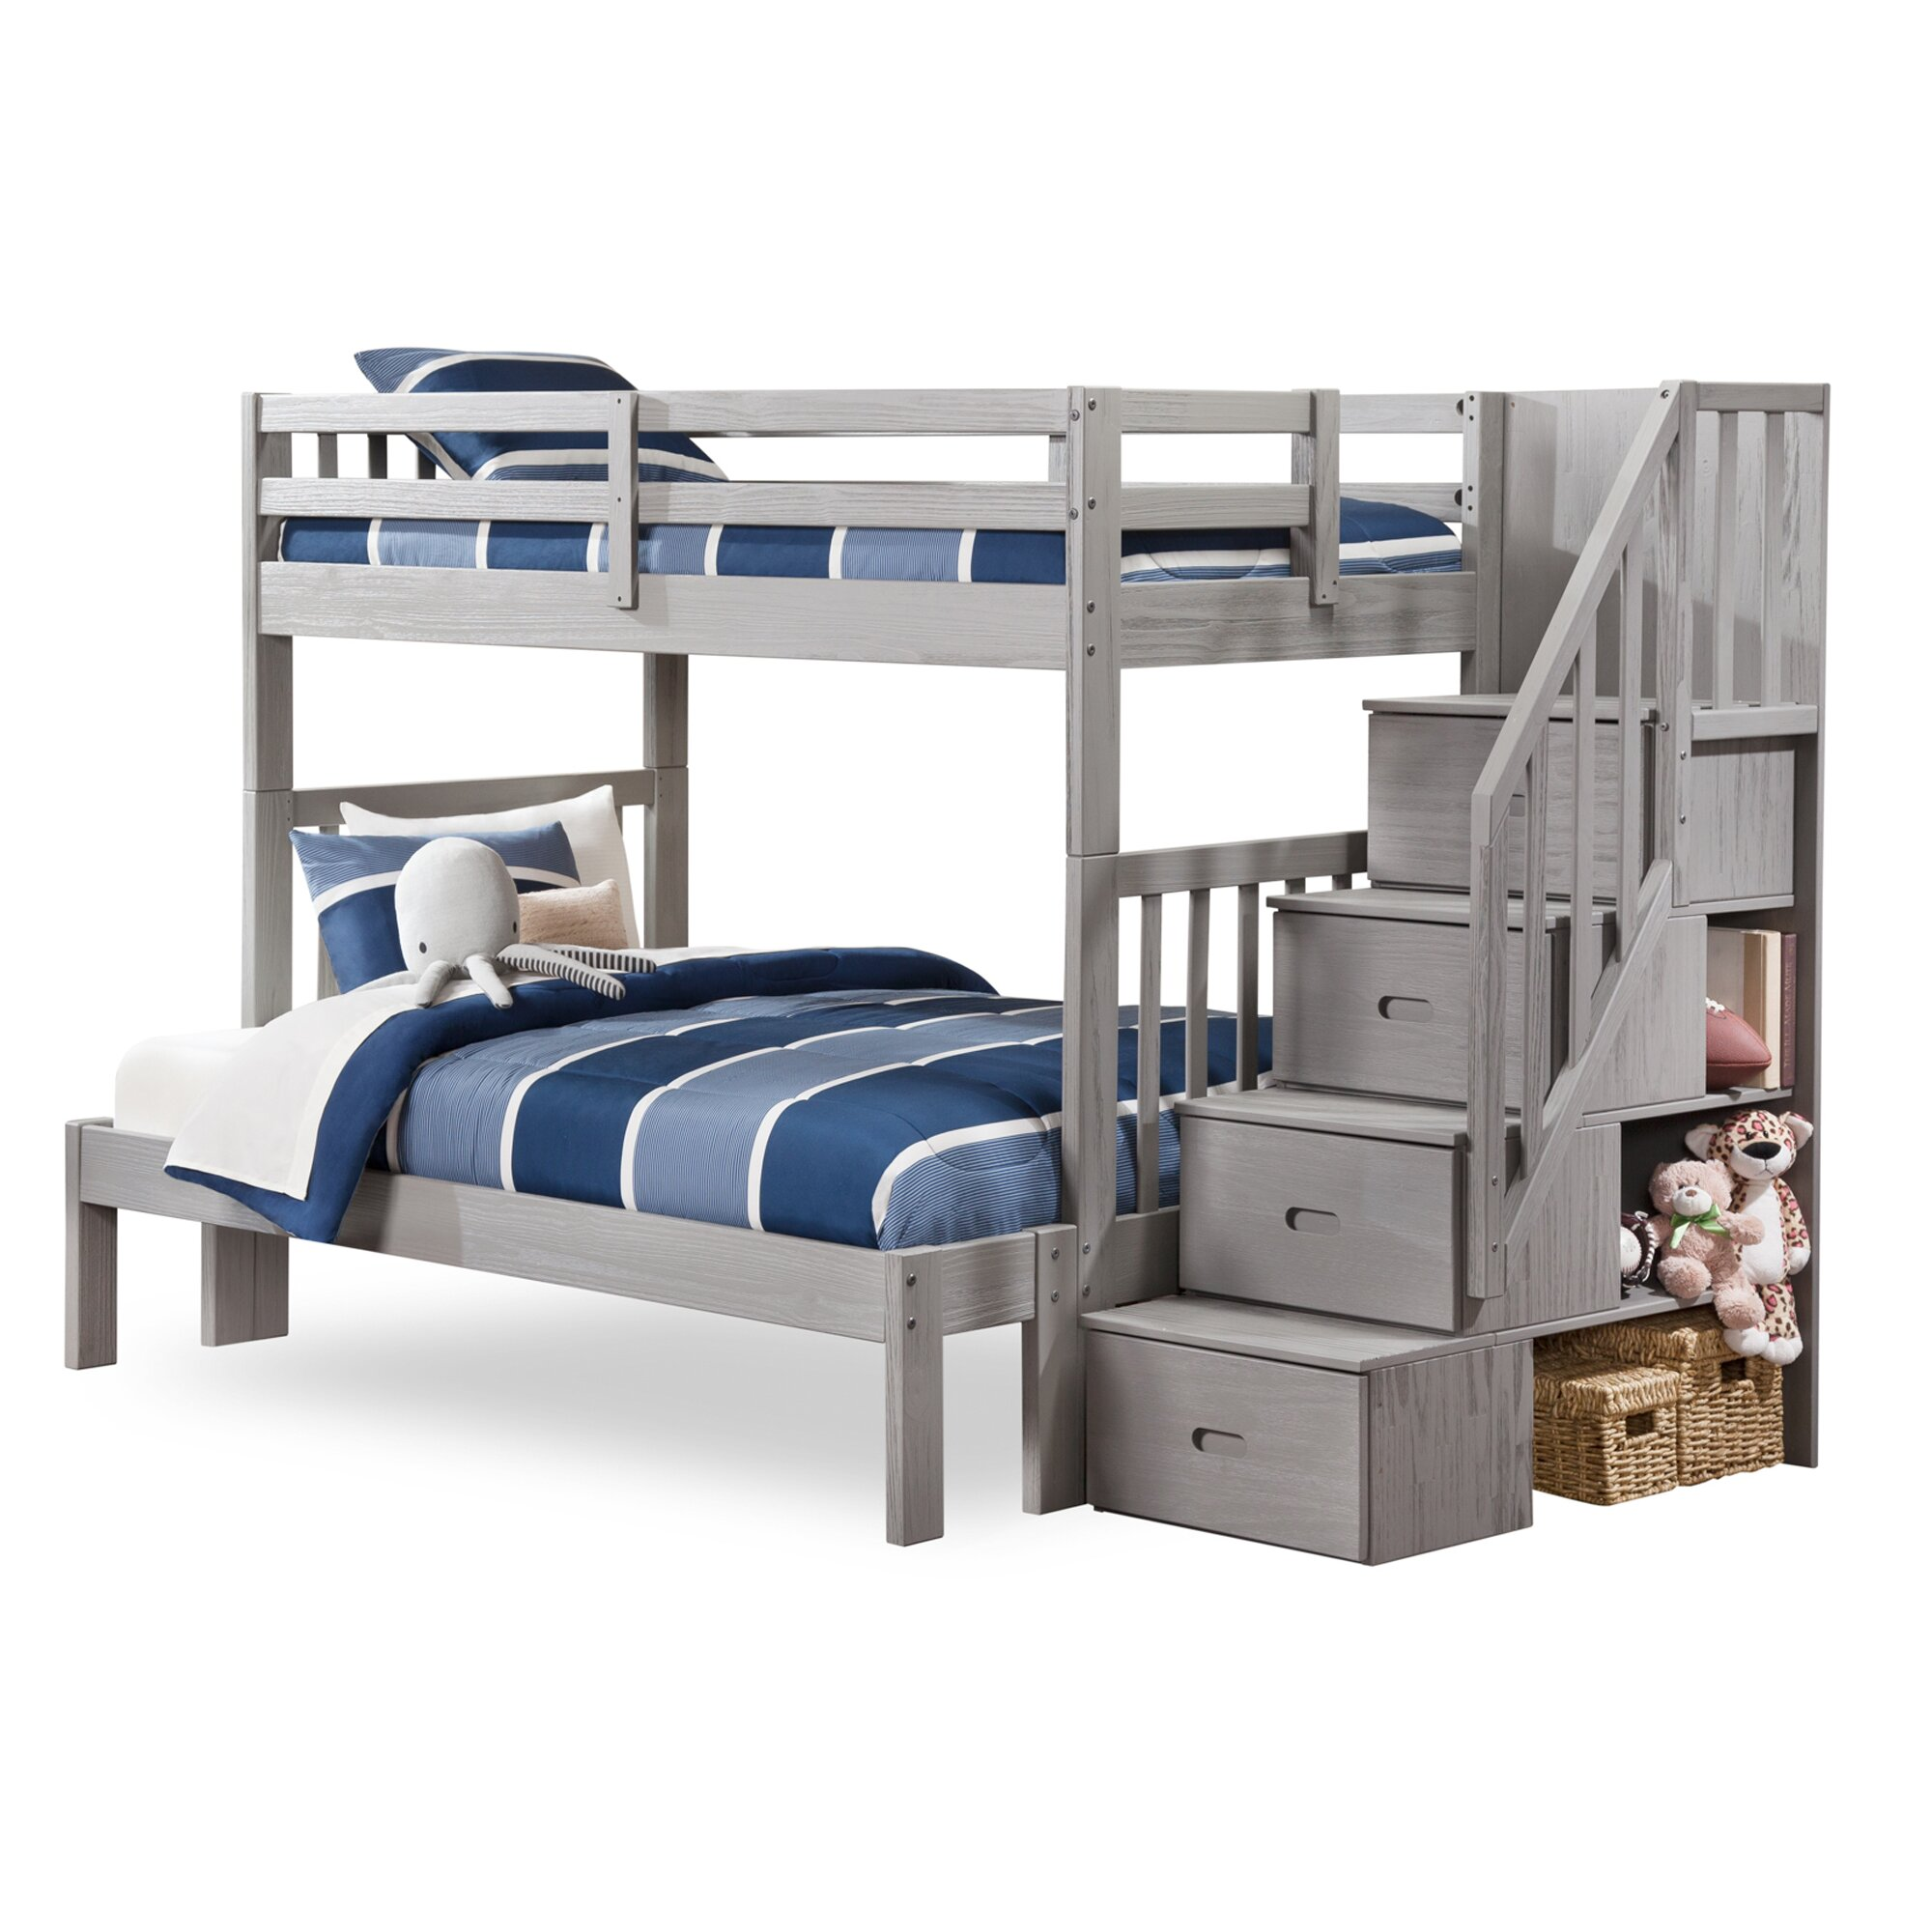 Viv rae dustin staircase bunk bed with drawers wayfair - Bunkbeds with drawers ...